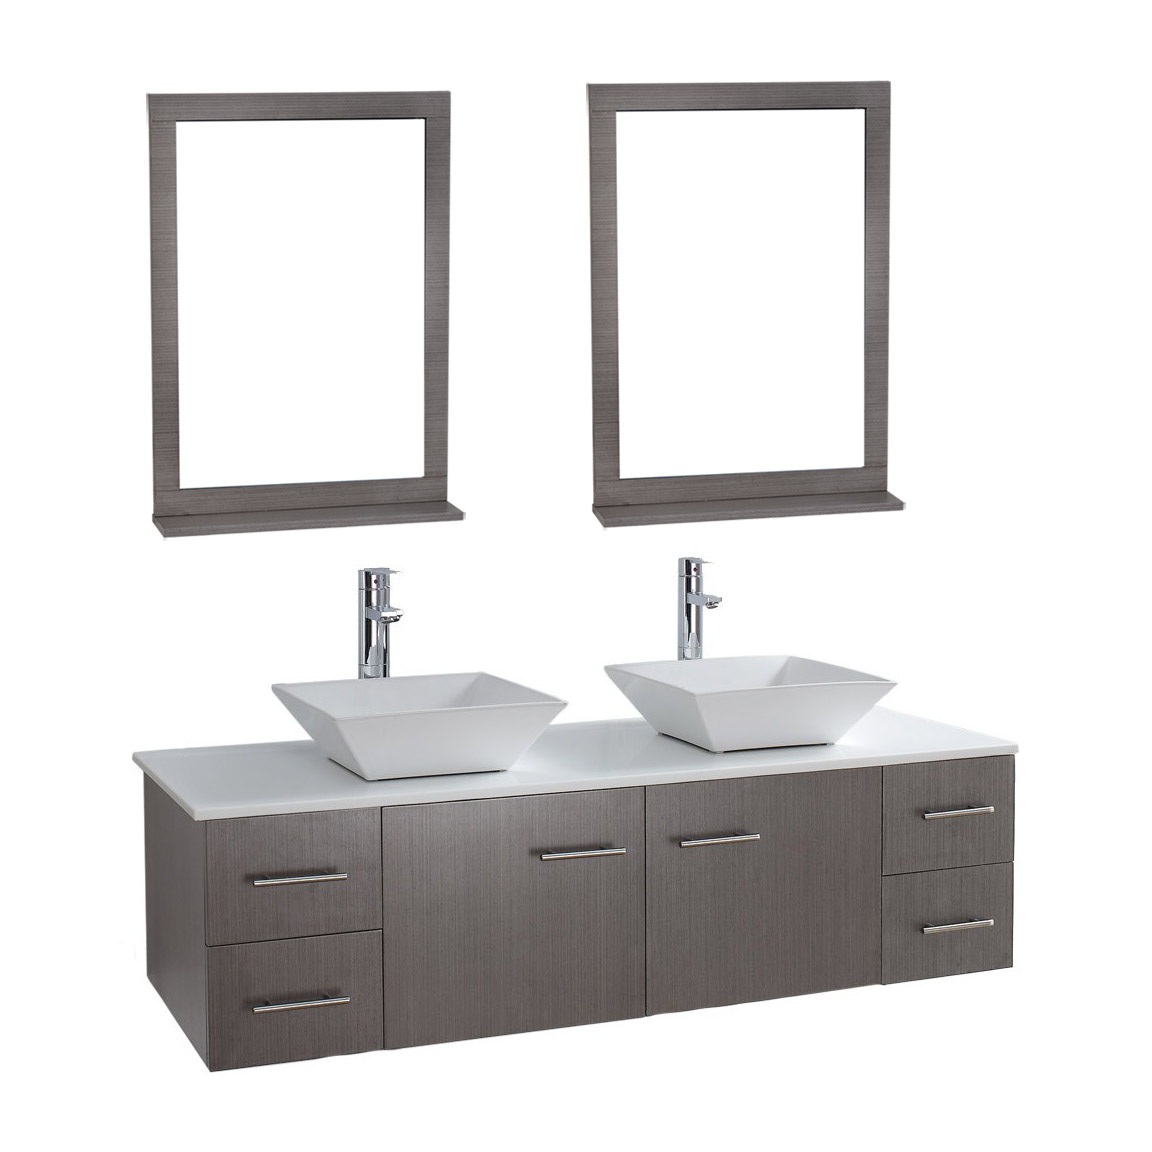 siena solid wood 71 wall mounted double bathroom vanity mirror set vm